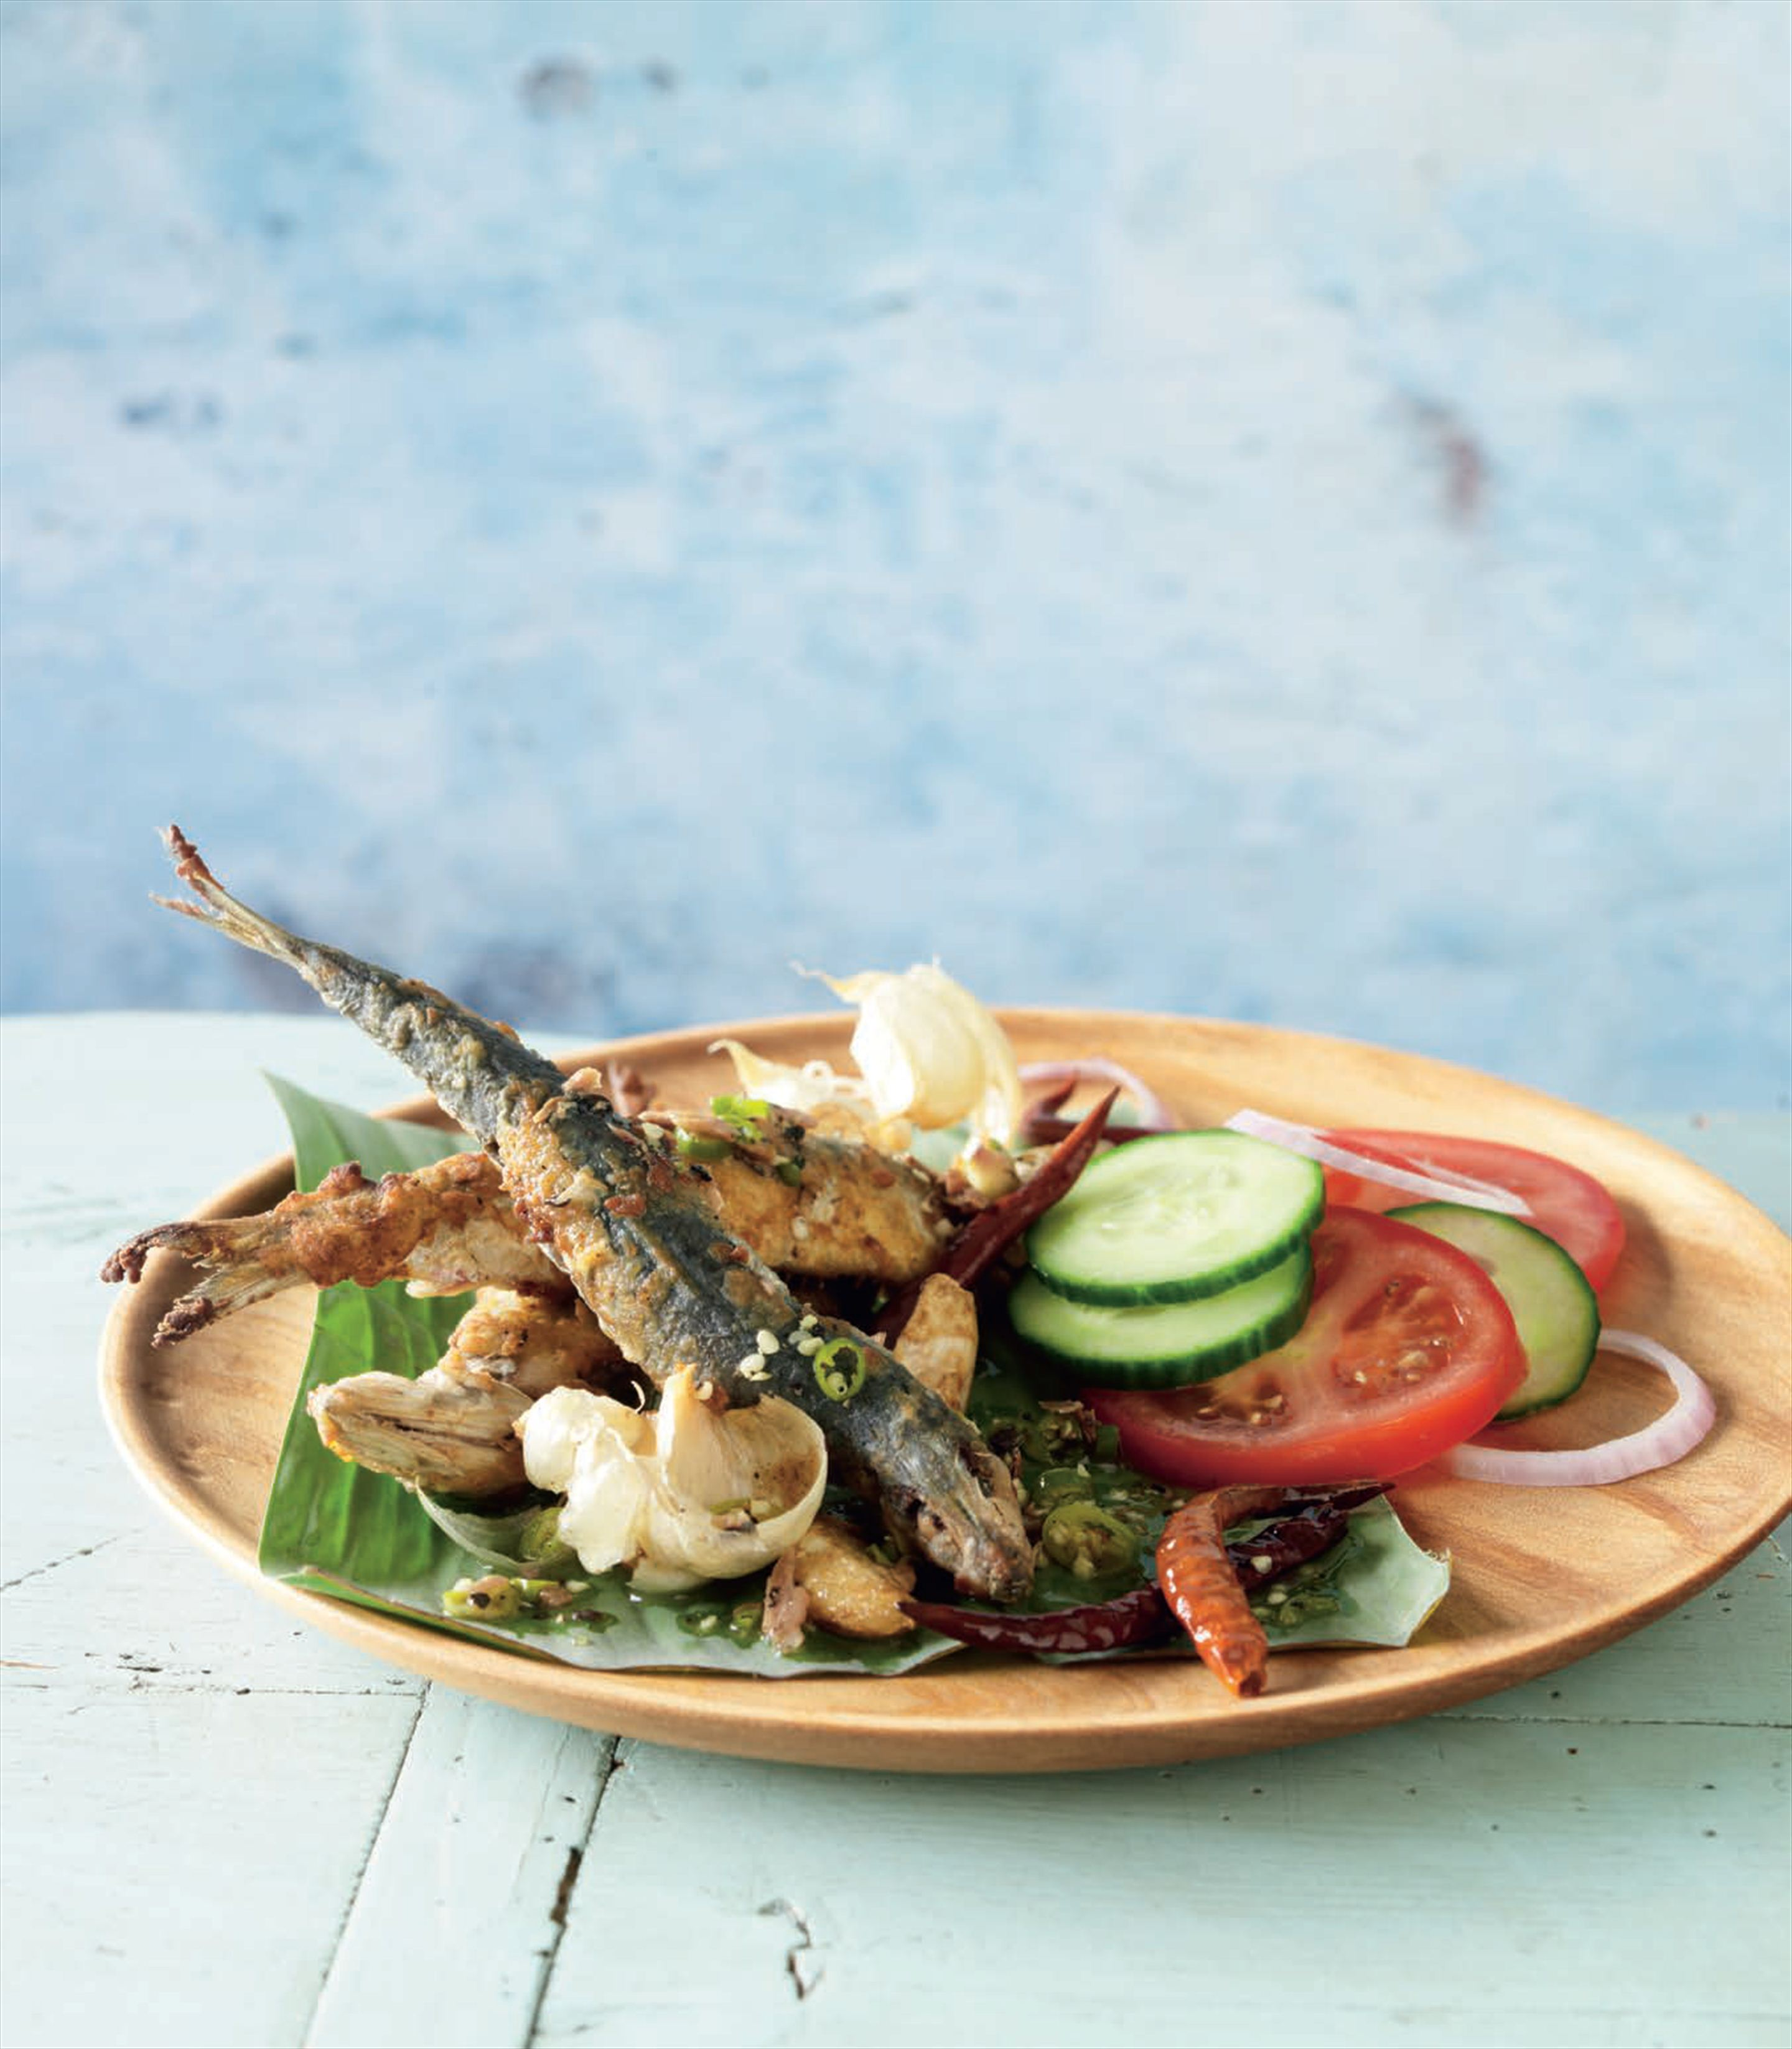 Crisp herrings with a spicy Sri Lankan salad